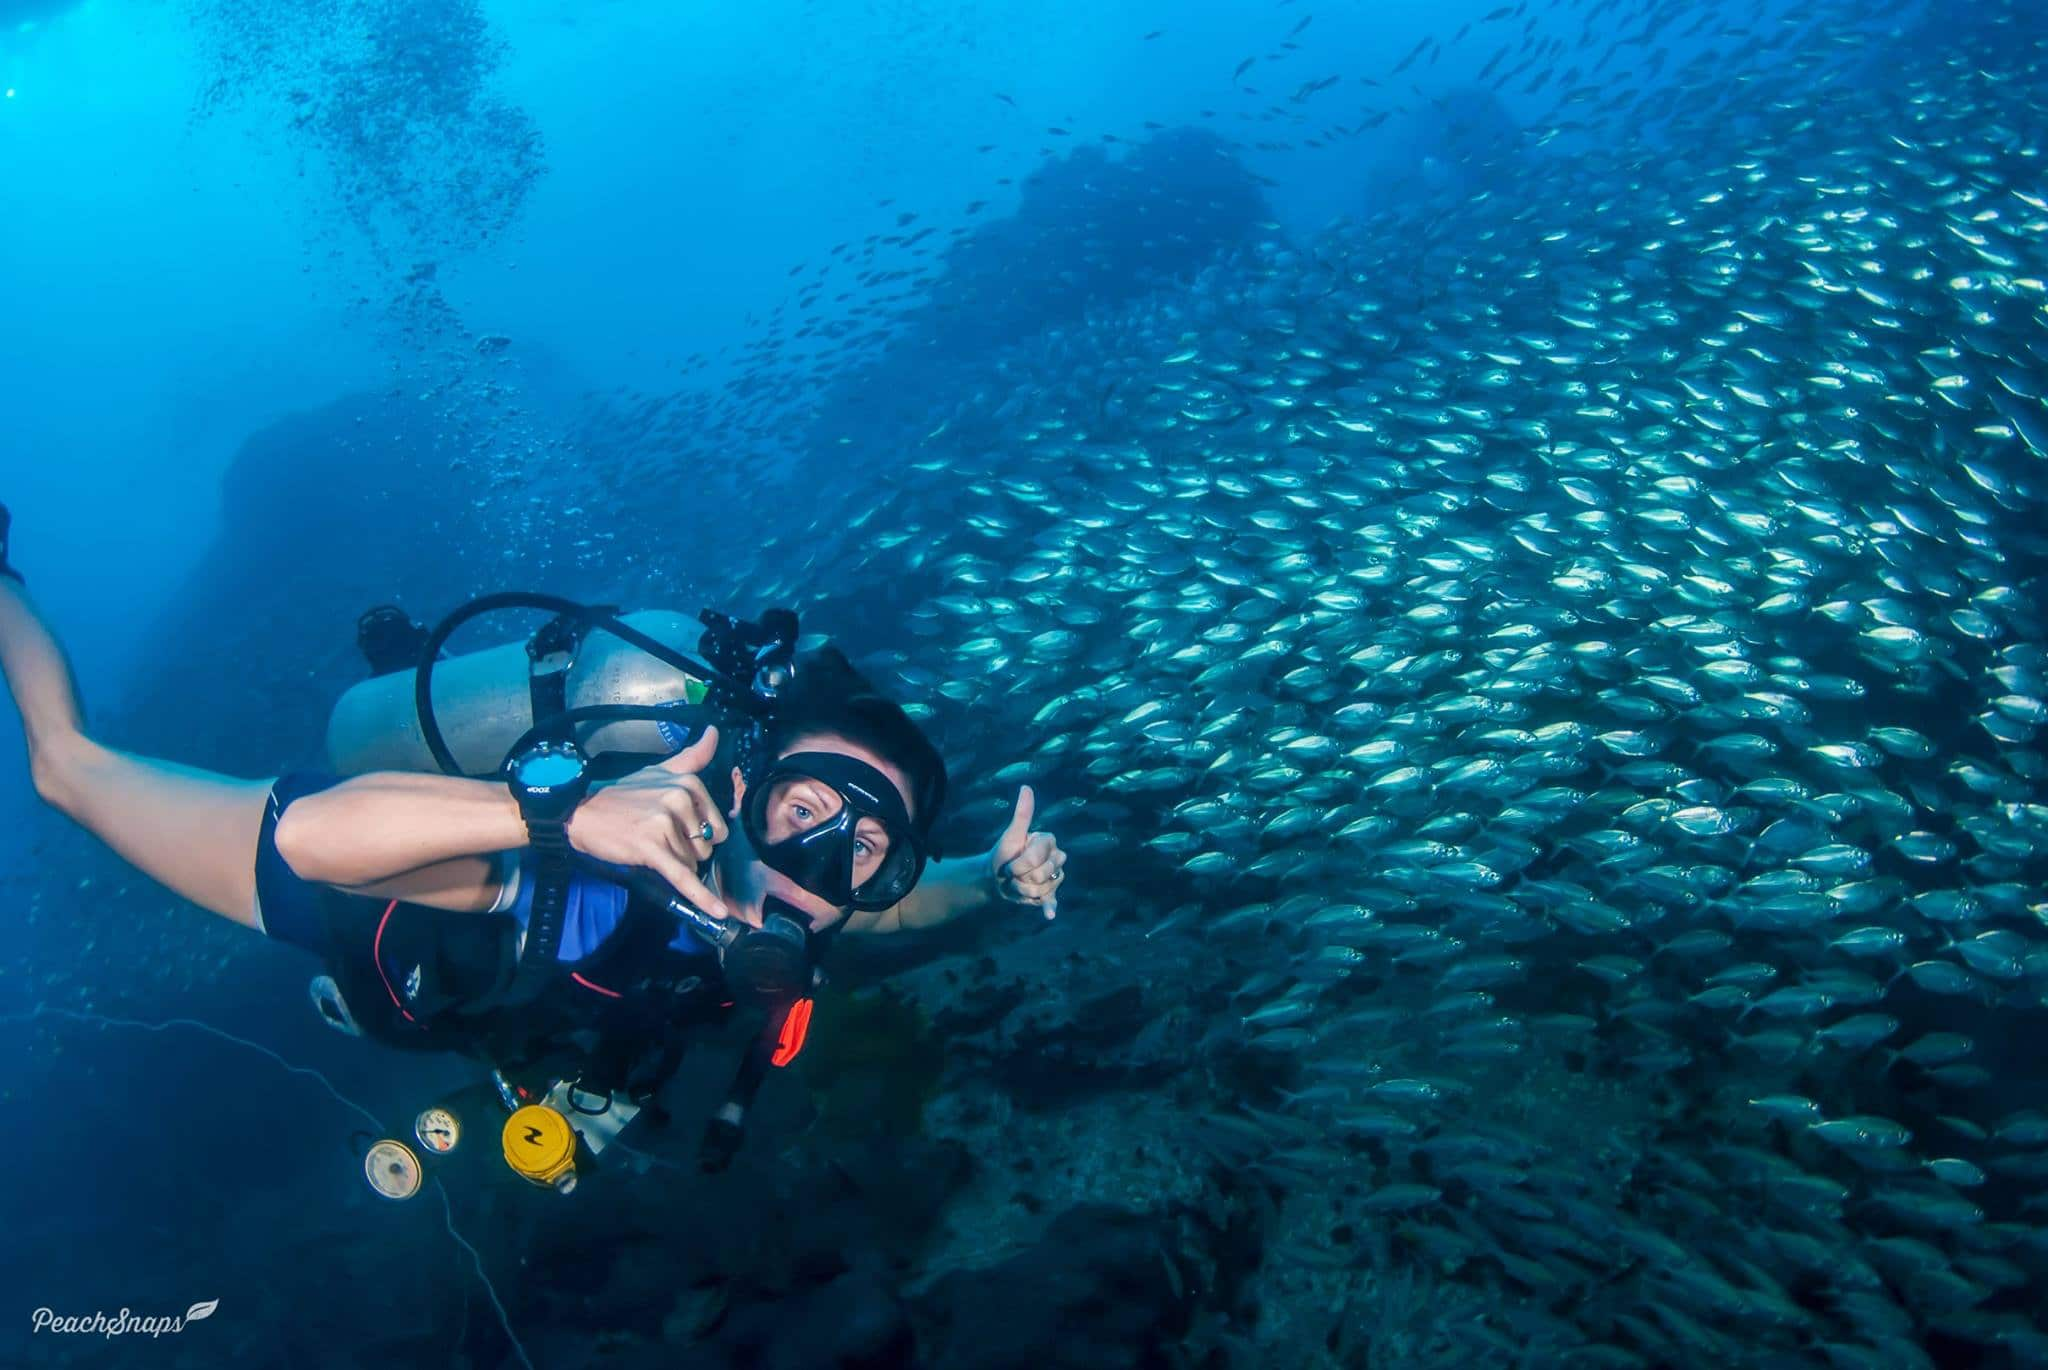 A successful diving instructor is very passionate